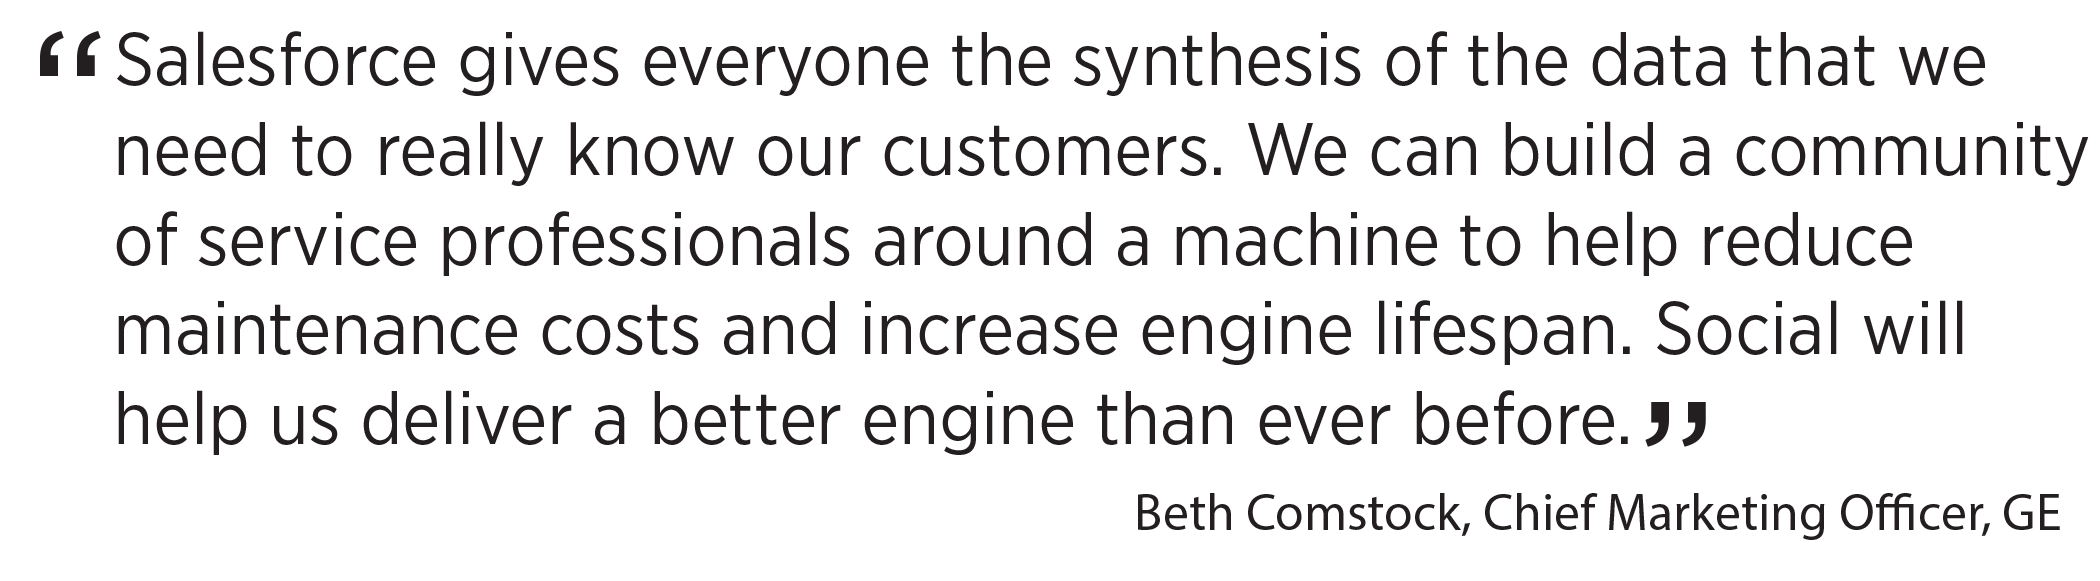 'Salesforce gives everyone the synthesis of the data that we need to really know our customers. We can build a community of service professionals around a machine to help reduce maintenance costs and increase engine lifespan. Social will help us deliver a better engine than ever before.' Beth Comstock, Chief Marketing Officer, GE